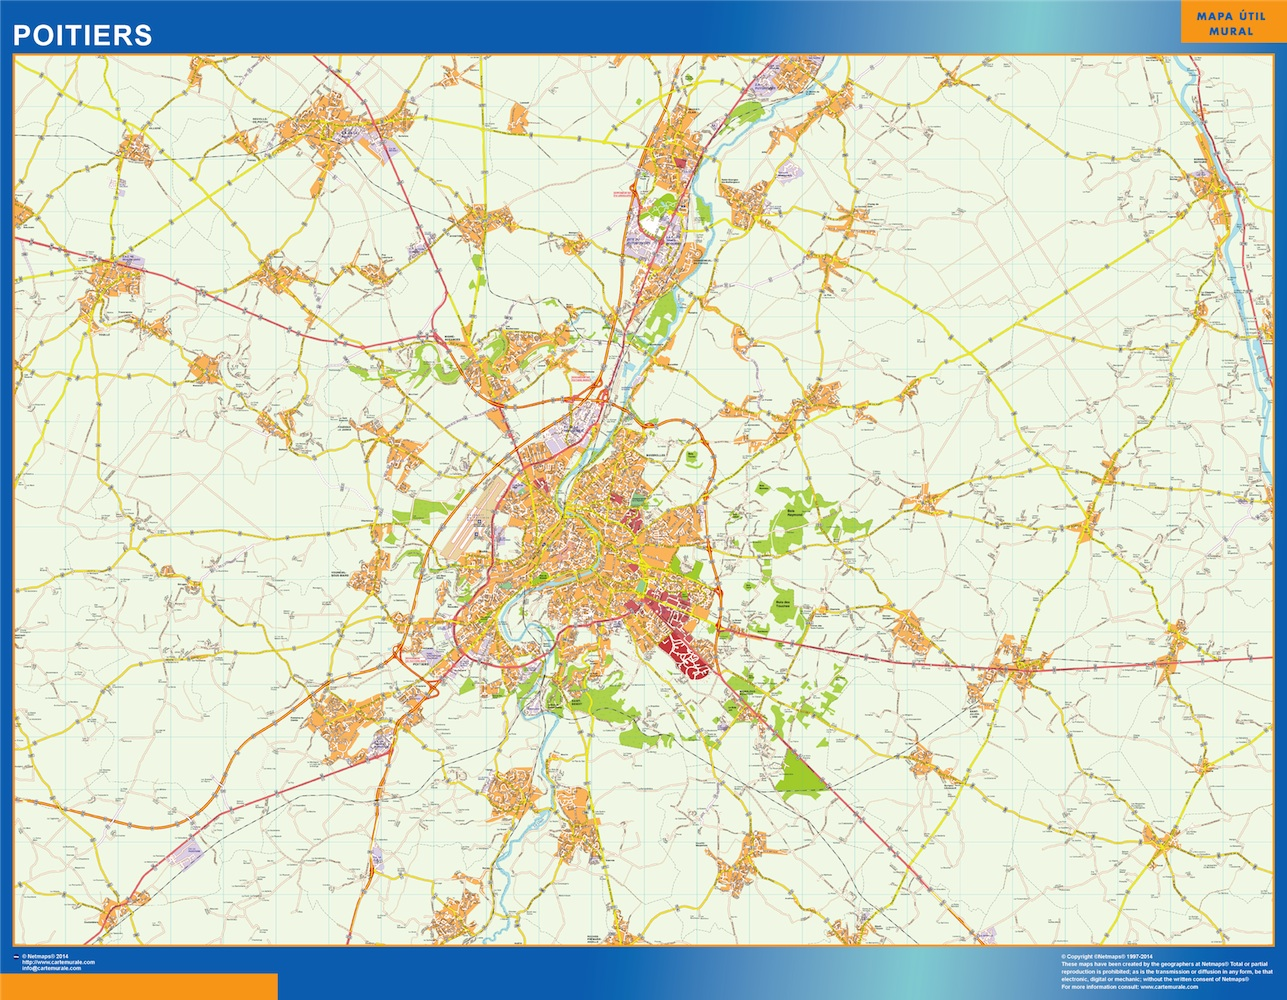 poitiers map